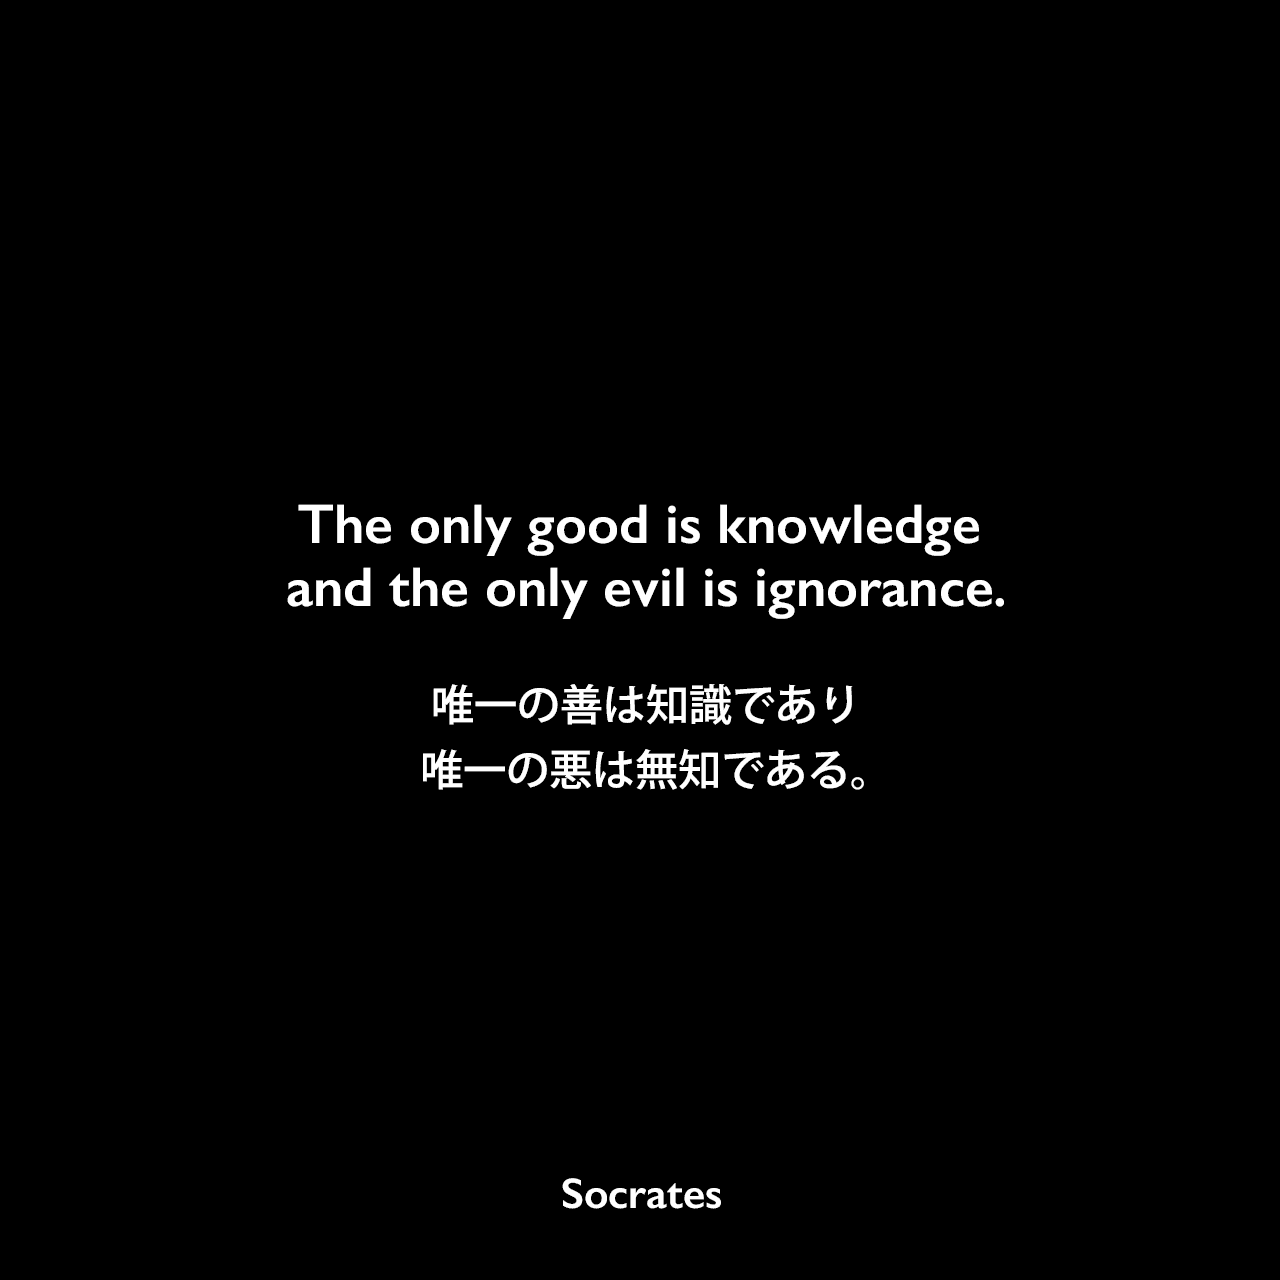 The only good is knowledge and the only evil is ignorance.唯一の善は知識であり、唯一の悪は無知である。- ディオゲネス・ラエルティオスの本「Lives of Eminent Philosophers」よりSocrates